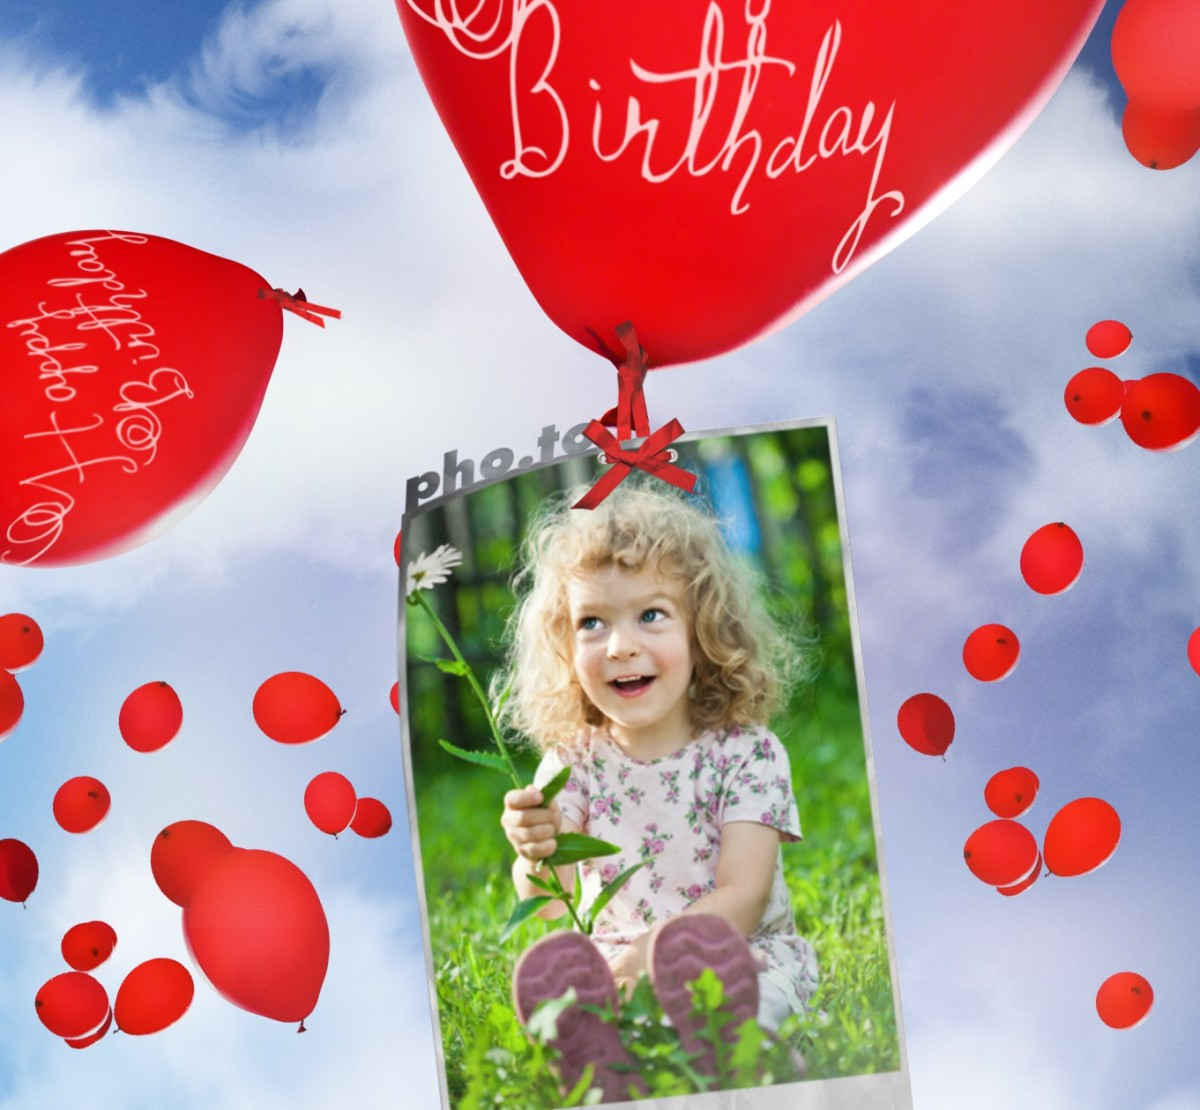 Online Birthday Card As A Way To Send Long Distance Greetings